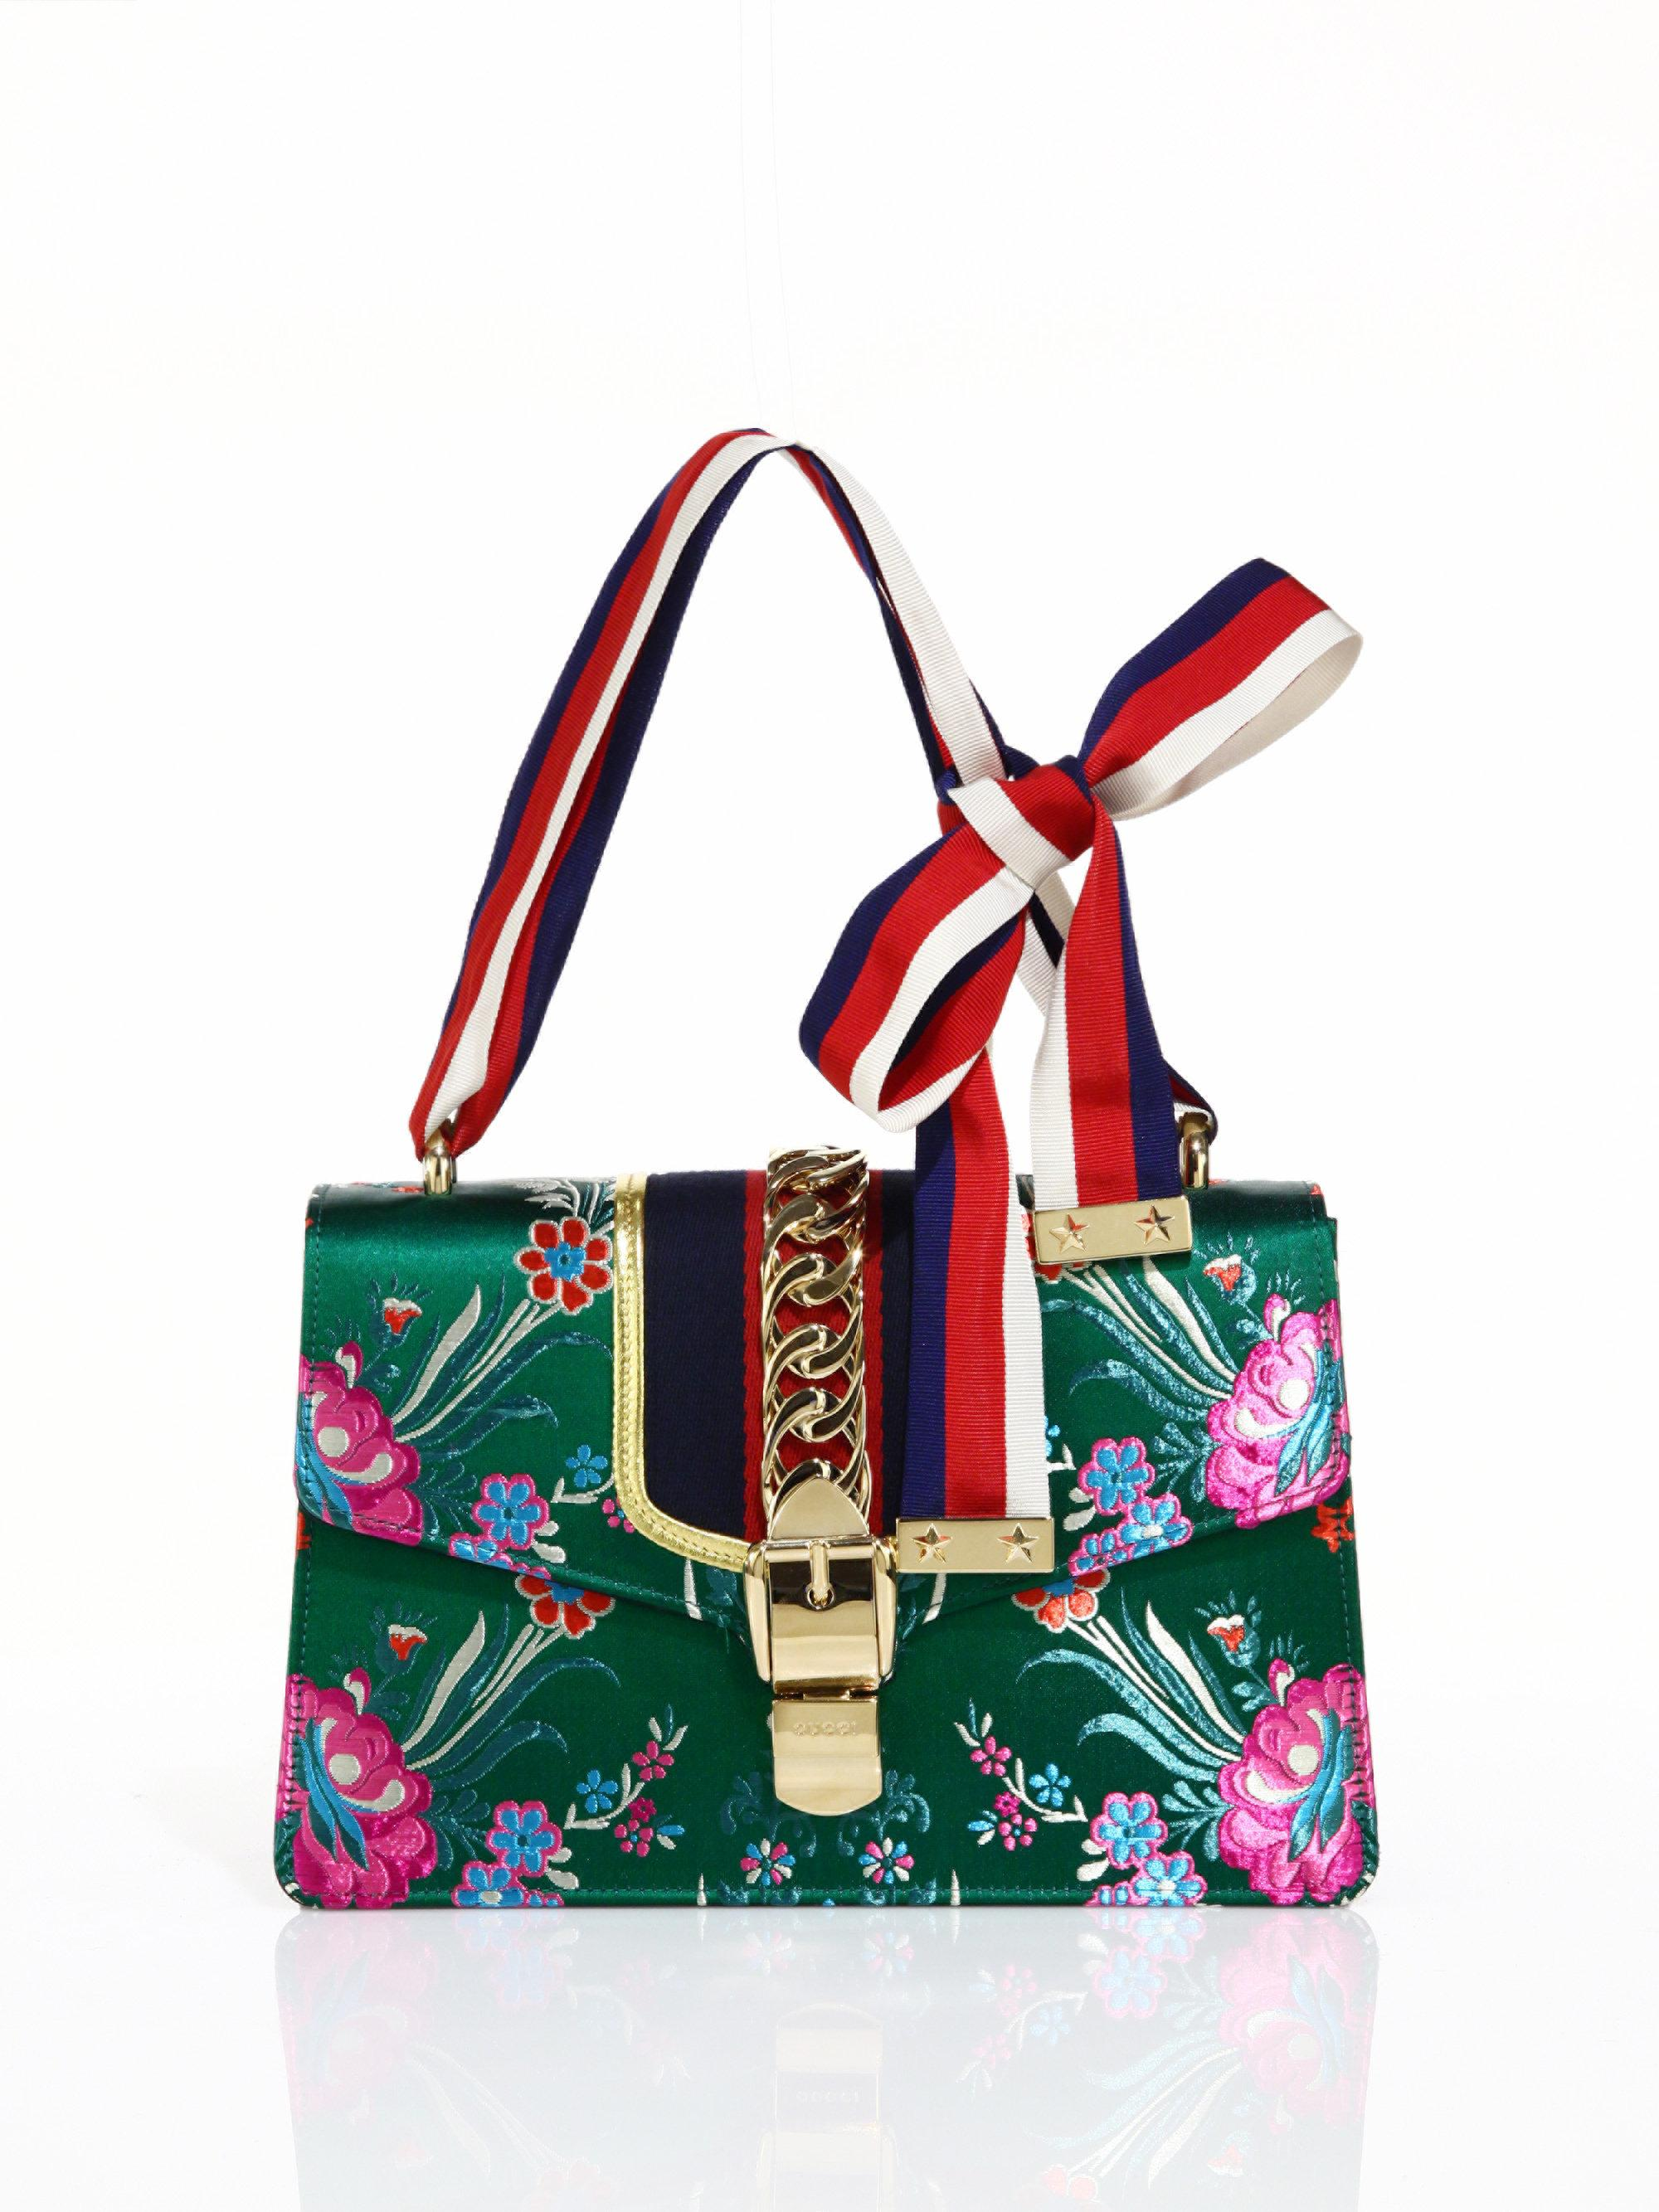 8b9d73b6610 Lyst - Gucci Sylvie Floral Jacquard Shoulder Bag in Green